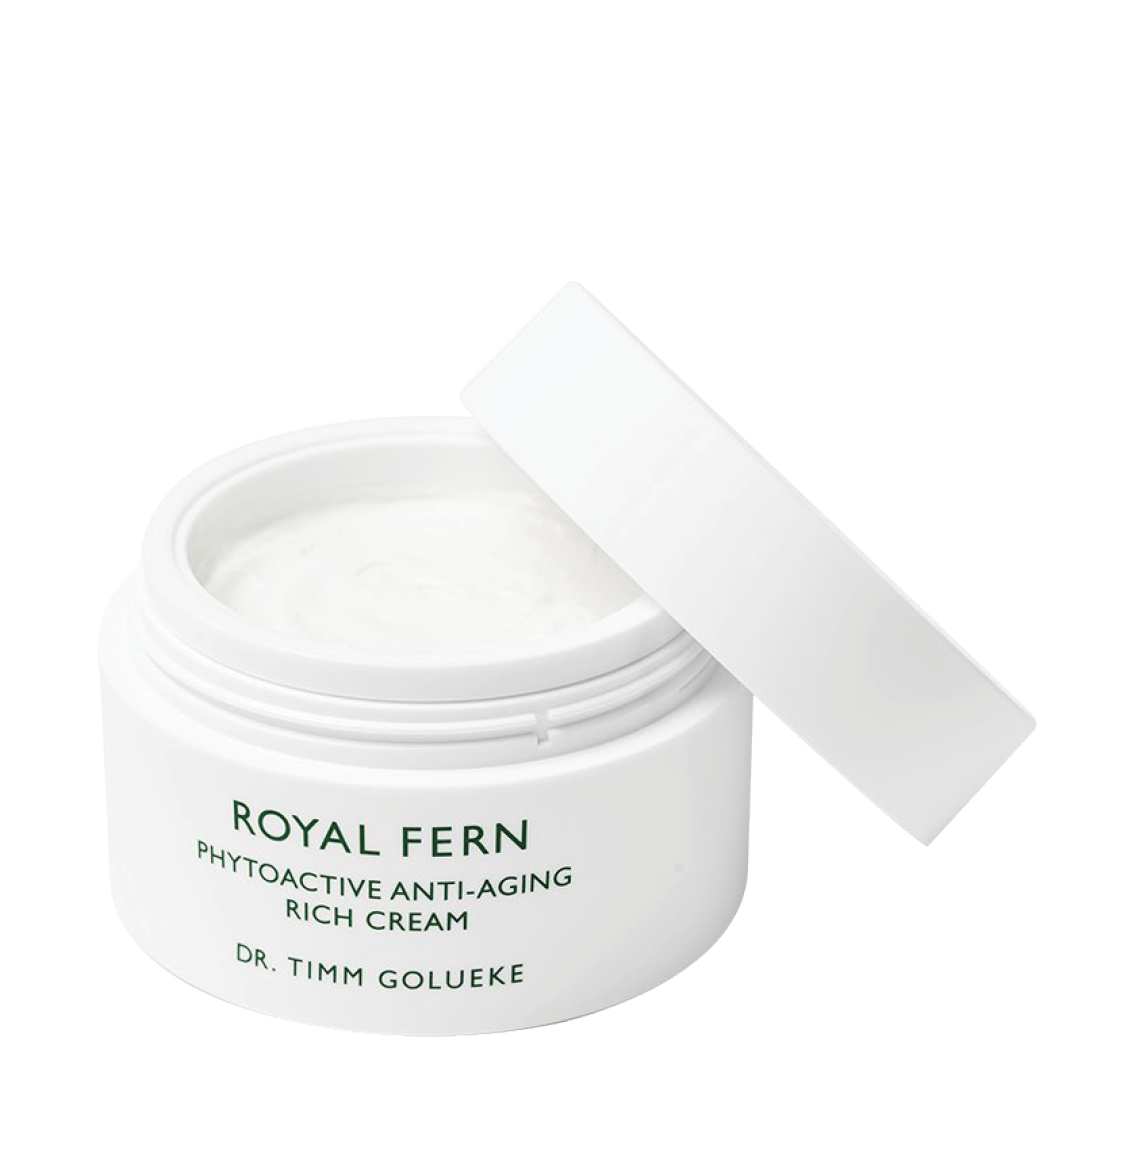 Royal Fern Phytoactive Anti-Aging Rich Cream 200ml